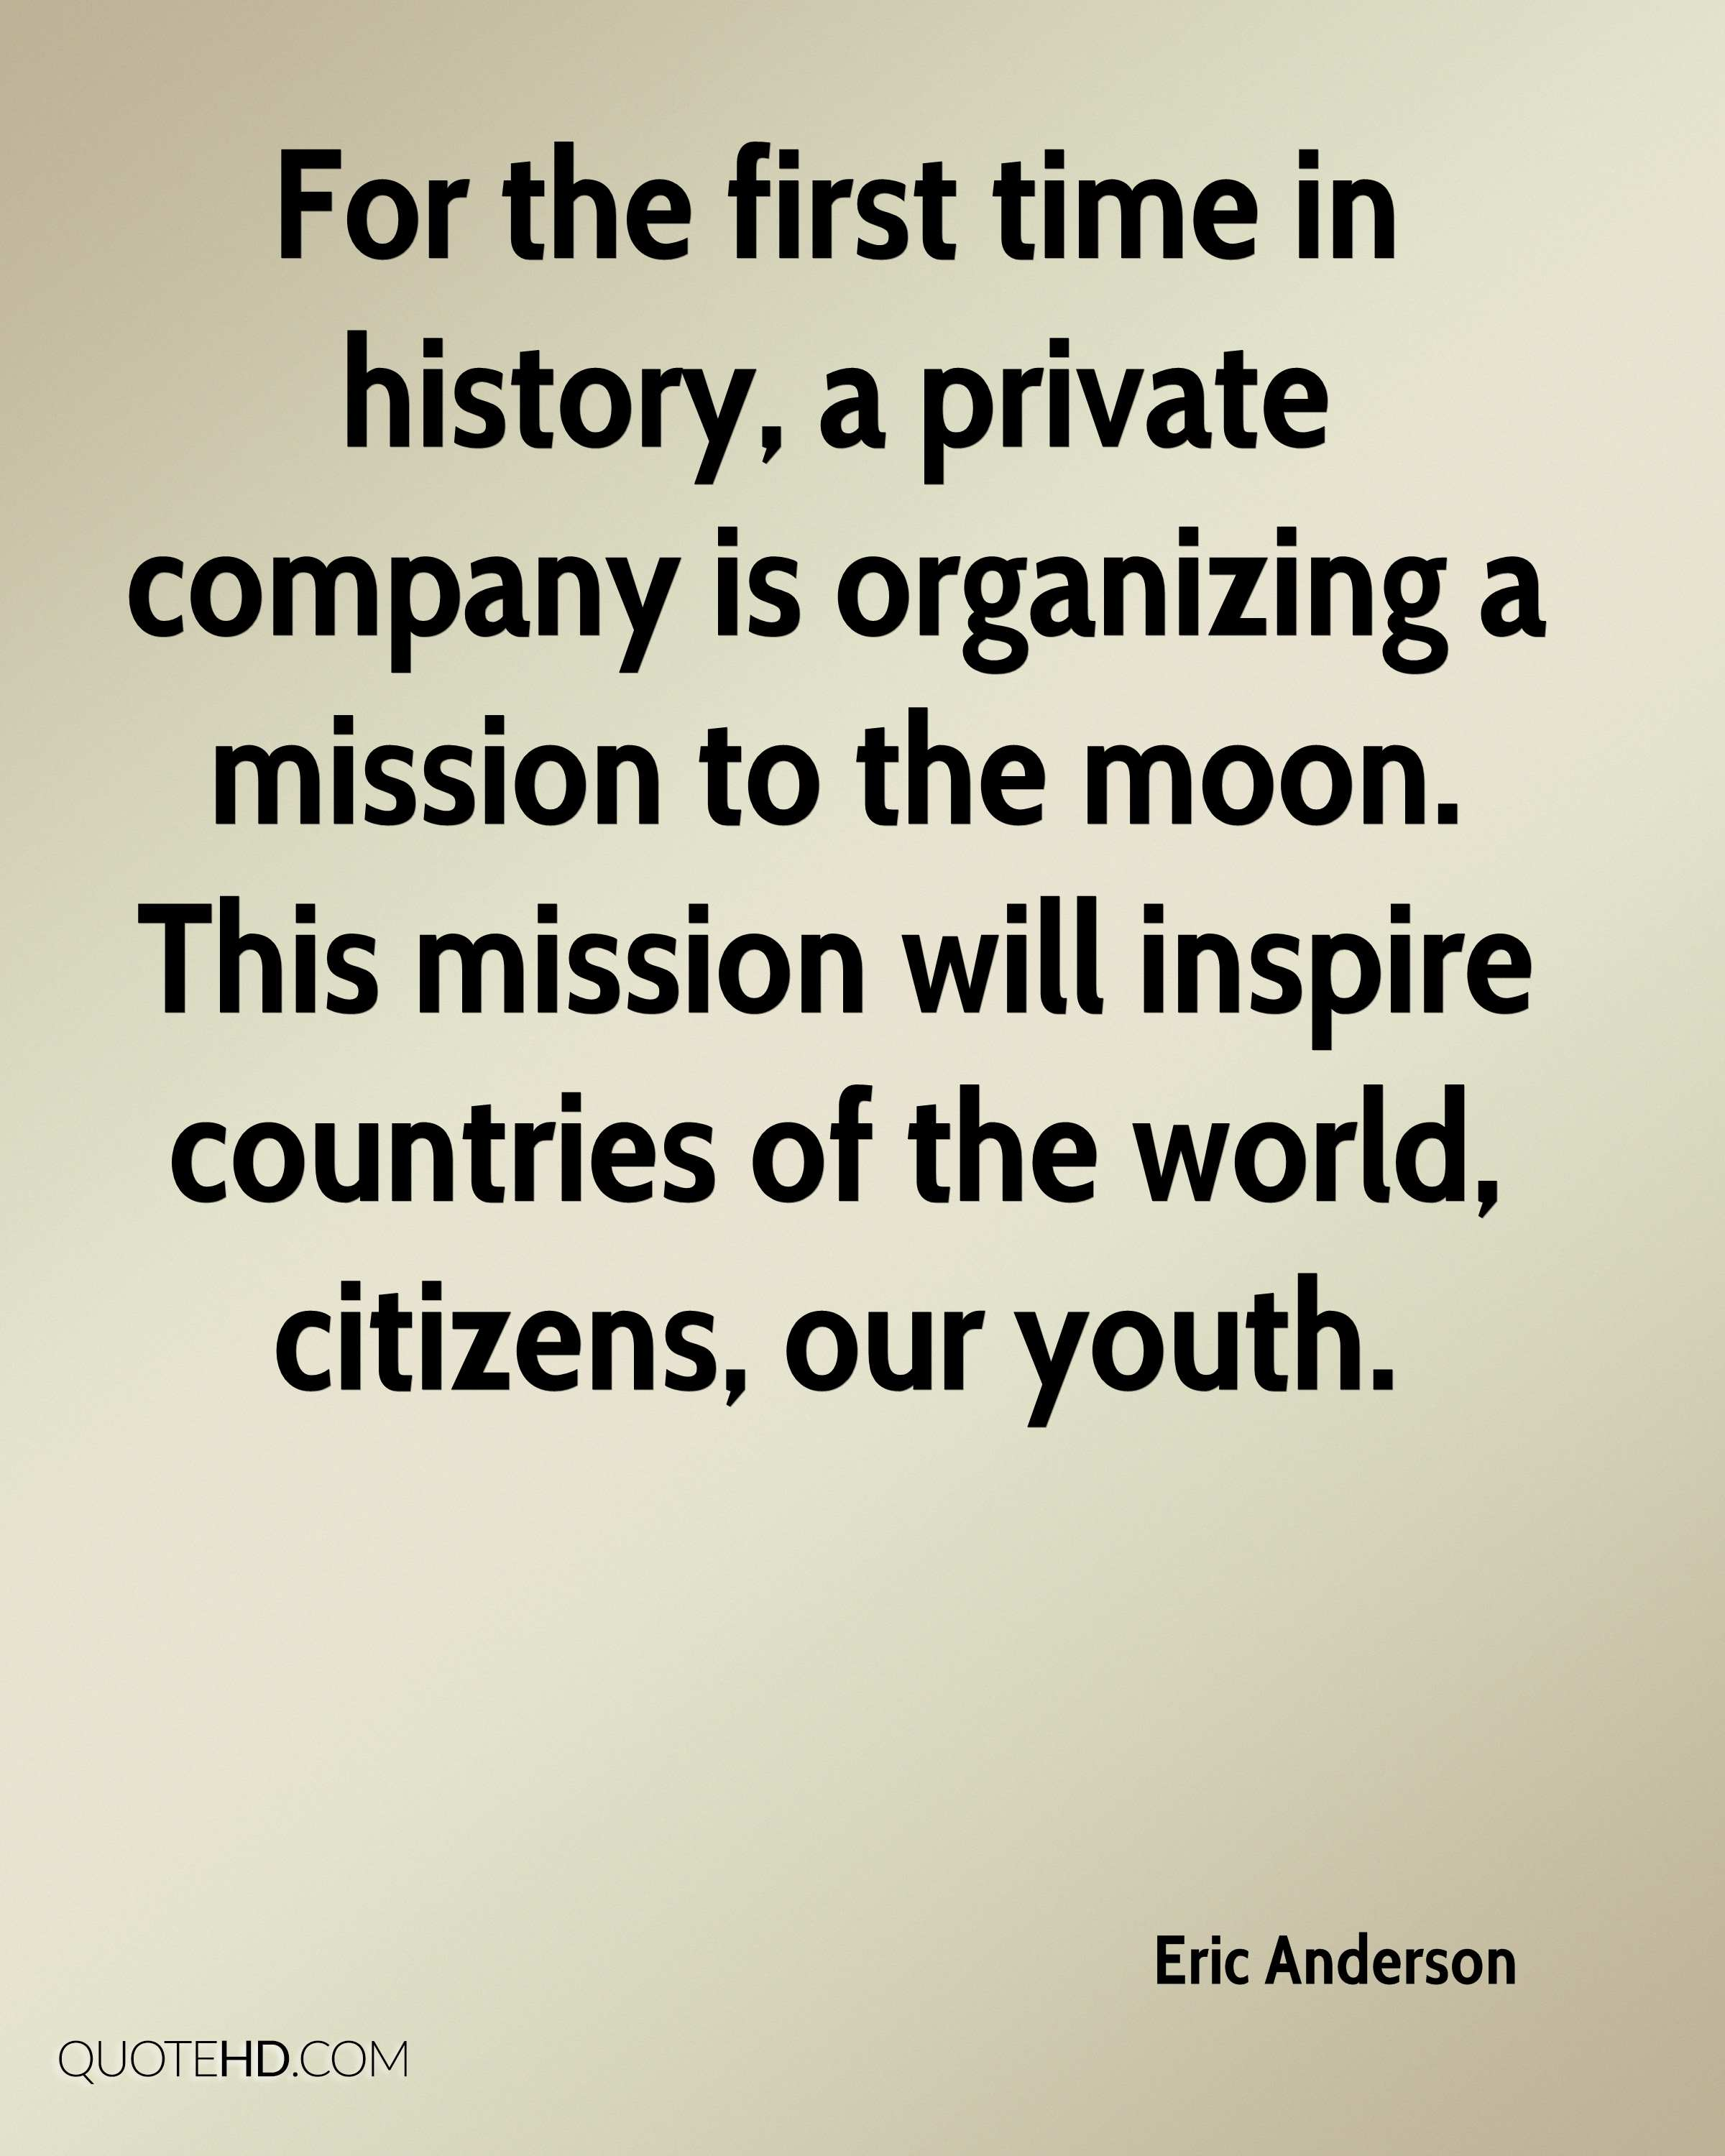 For the first time in history, a private company is organizing a mission to the moon. This mission will inspire countries of the world, citizens, our youth.